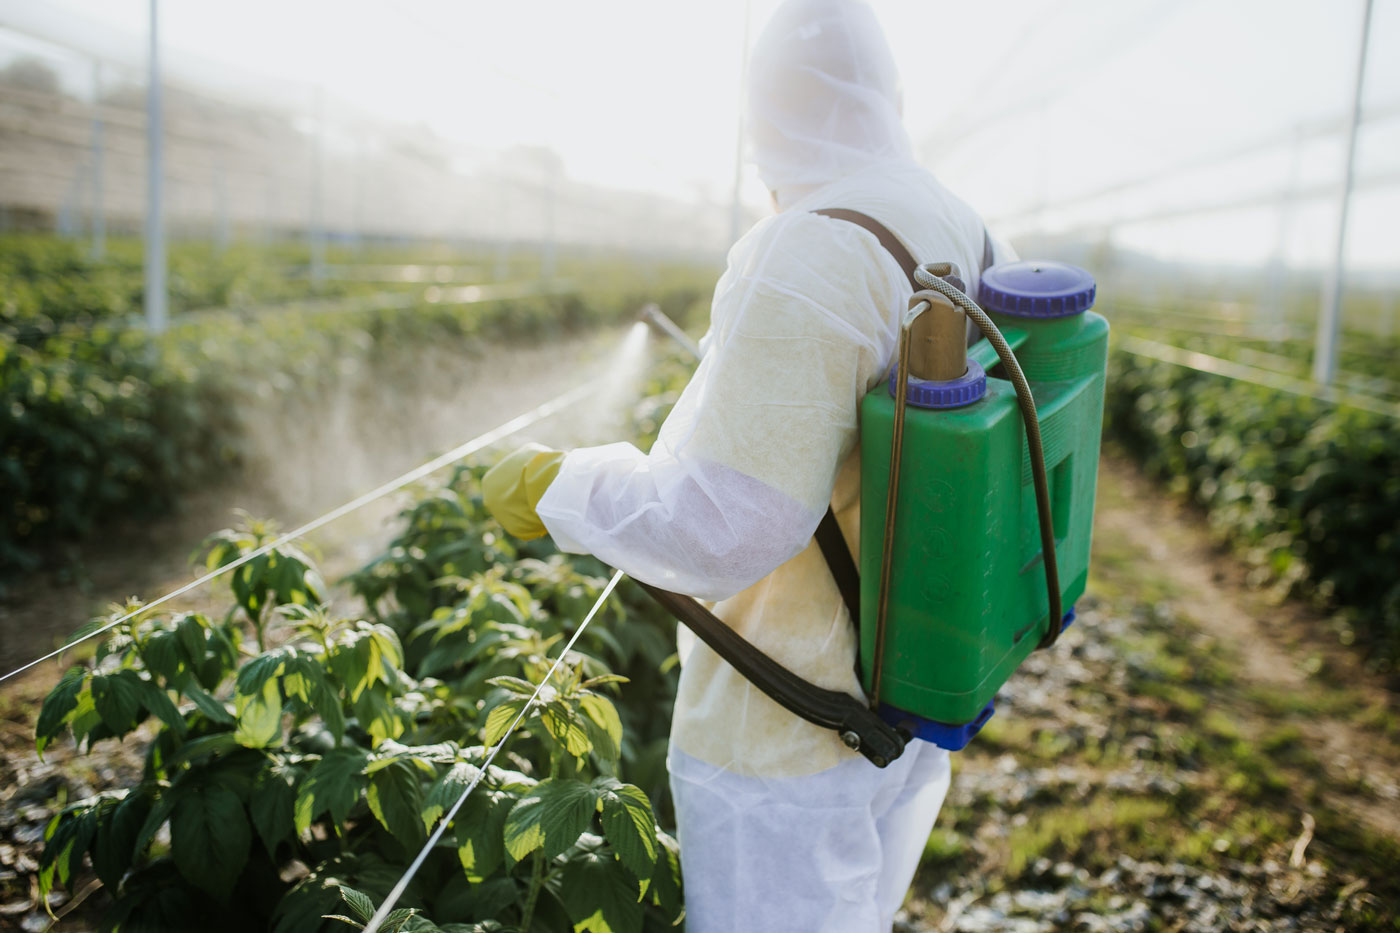 How to Remove Pesticides From Your Produce - CNM College of Naturopathic Medicine